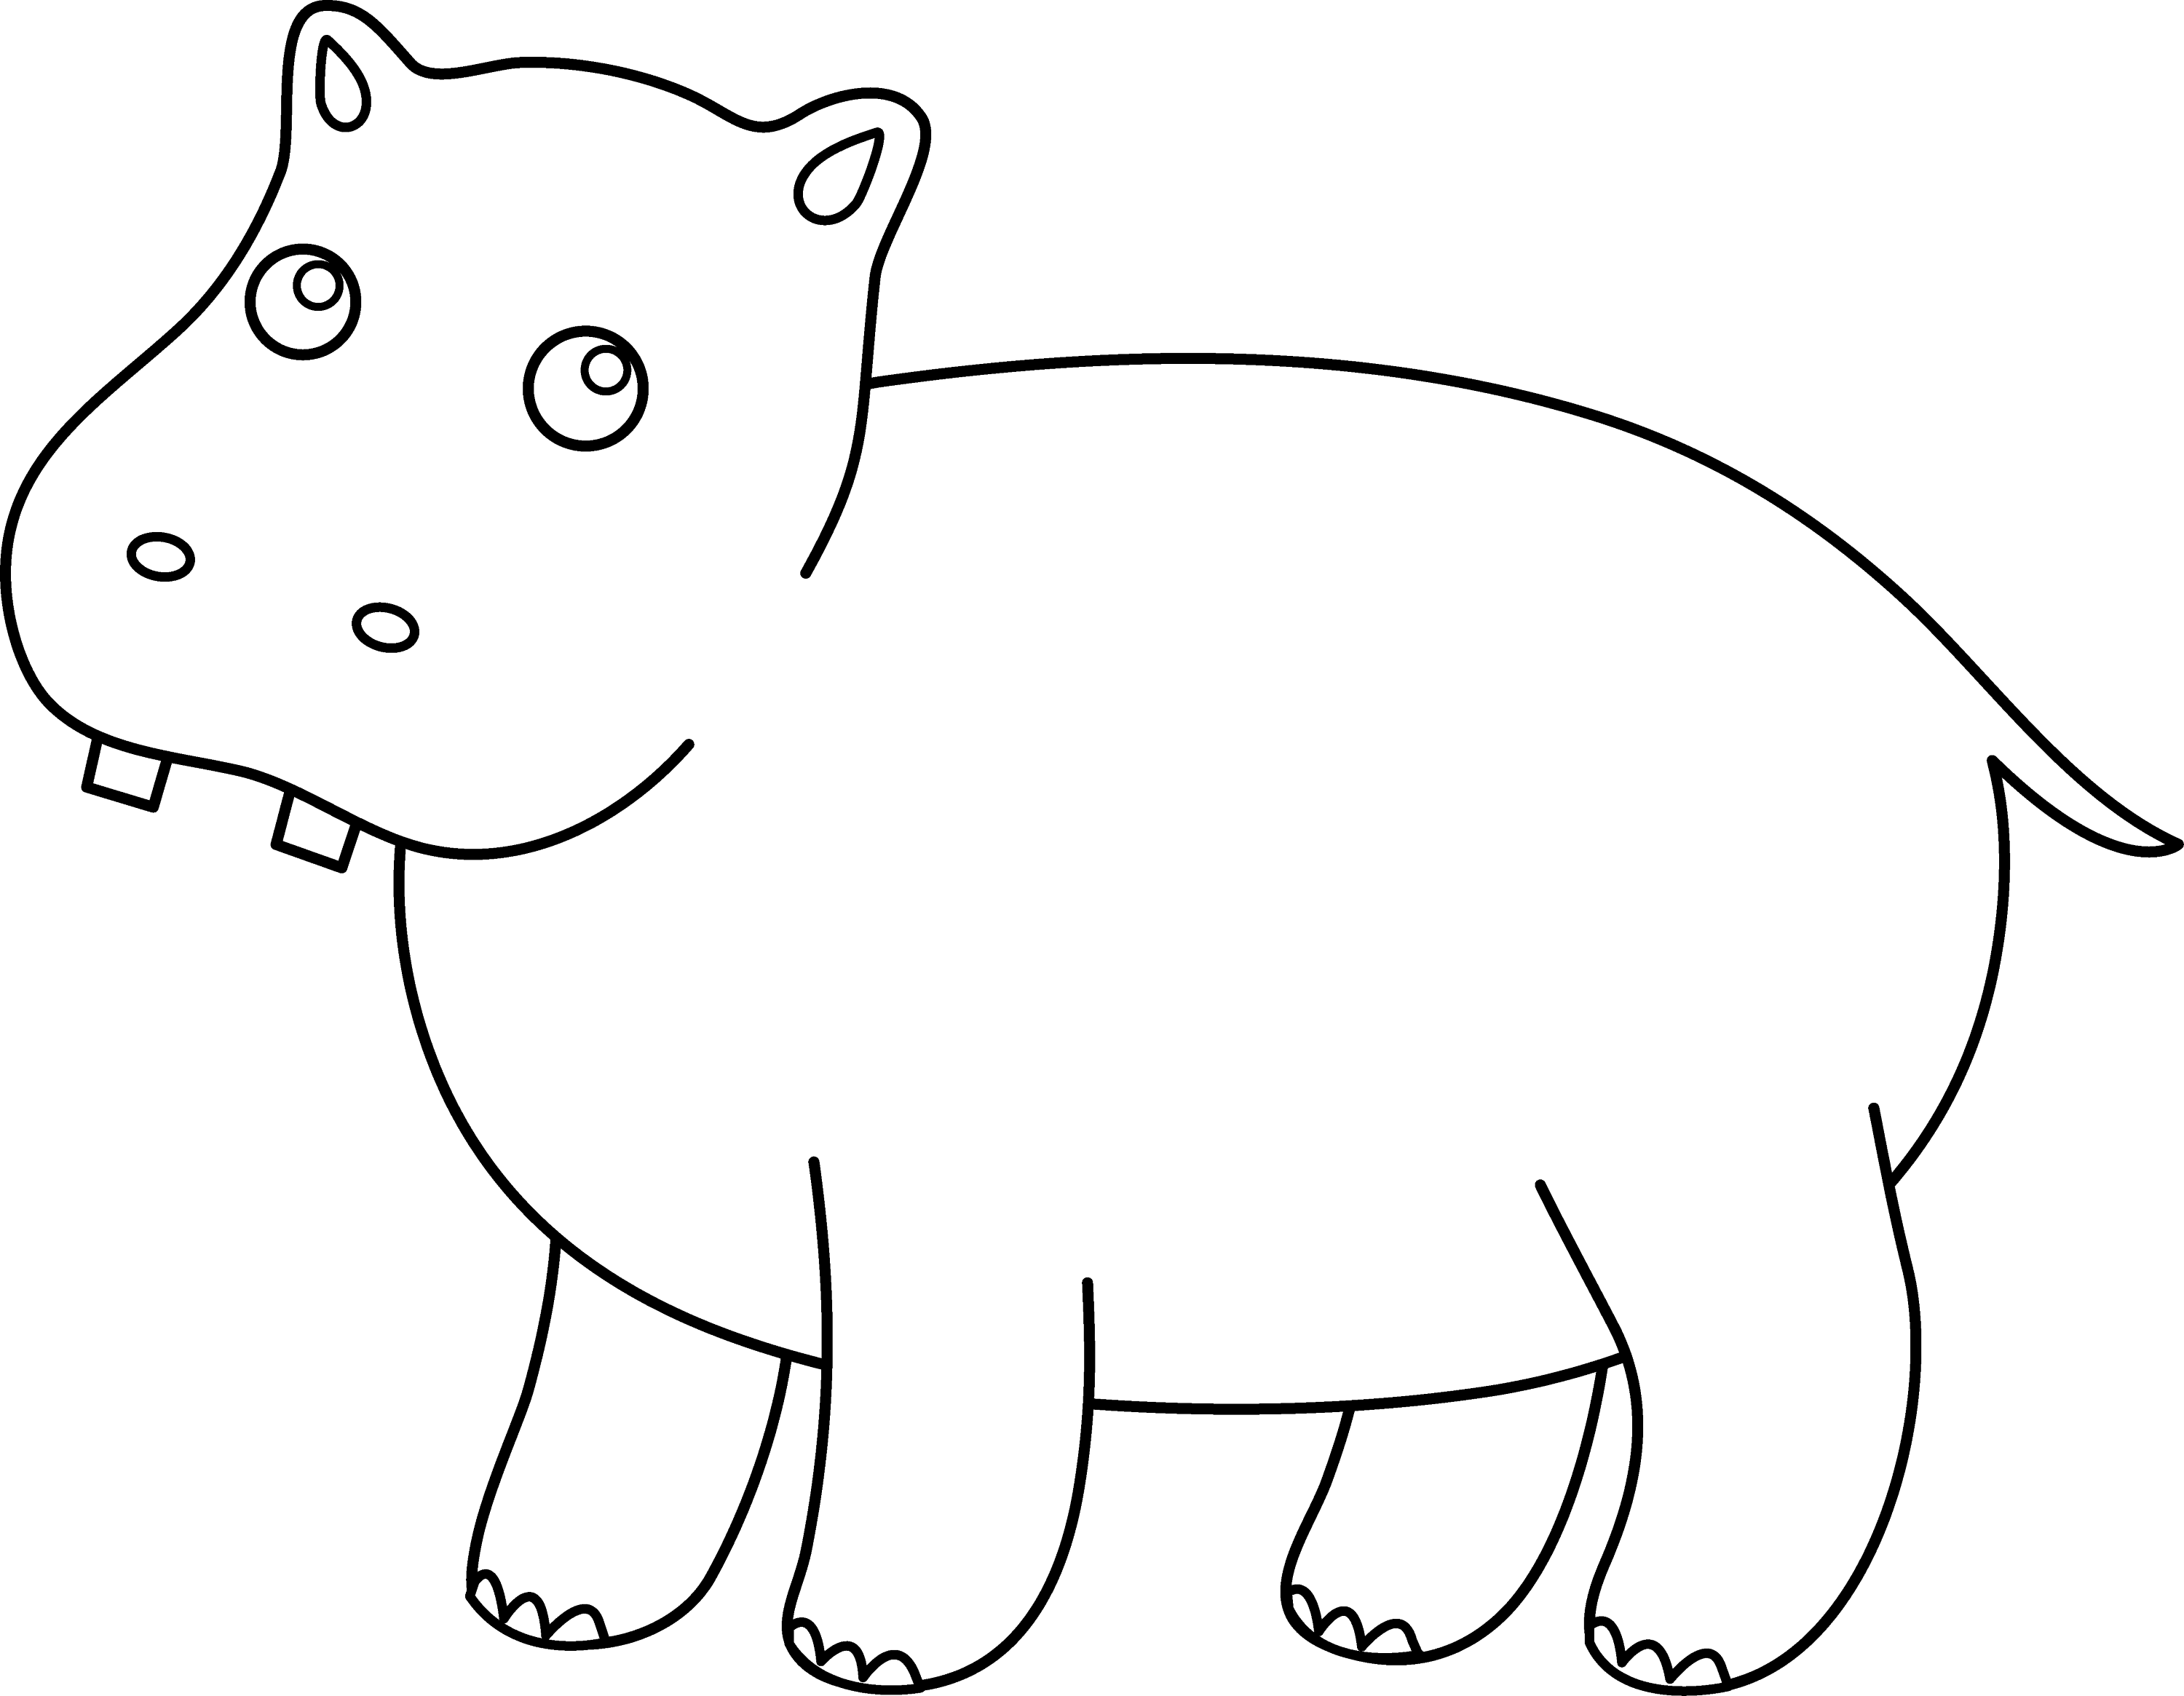 coloring hippo clipart hippo outline drawing at getdrawings free download hippo coloring clipart